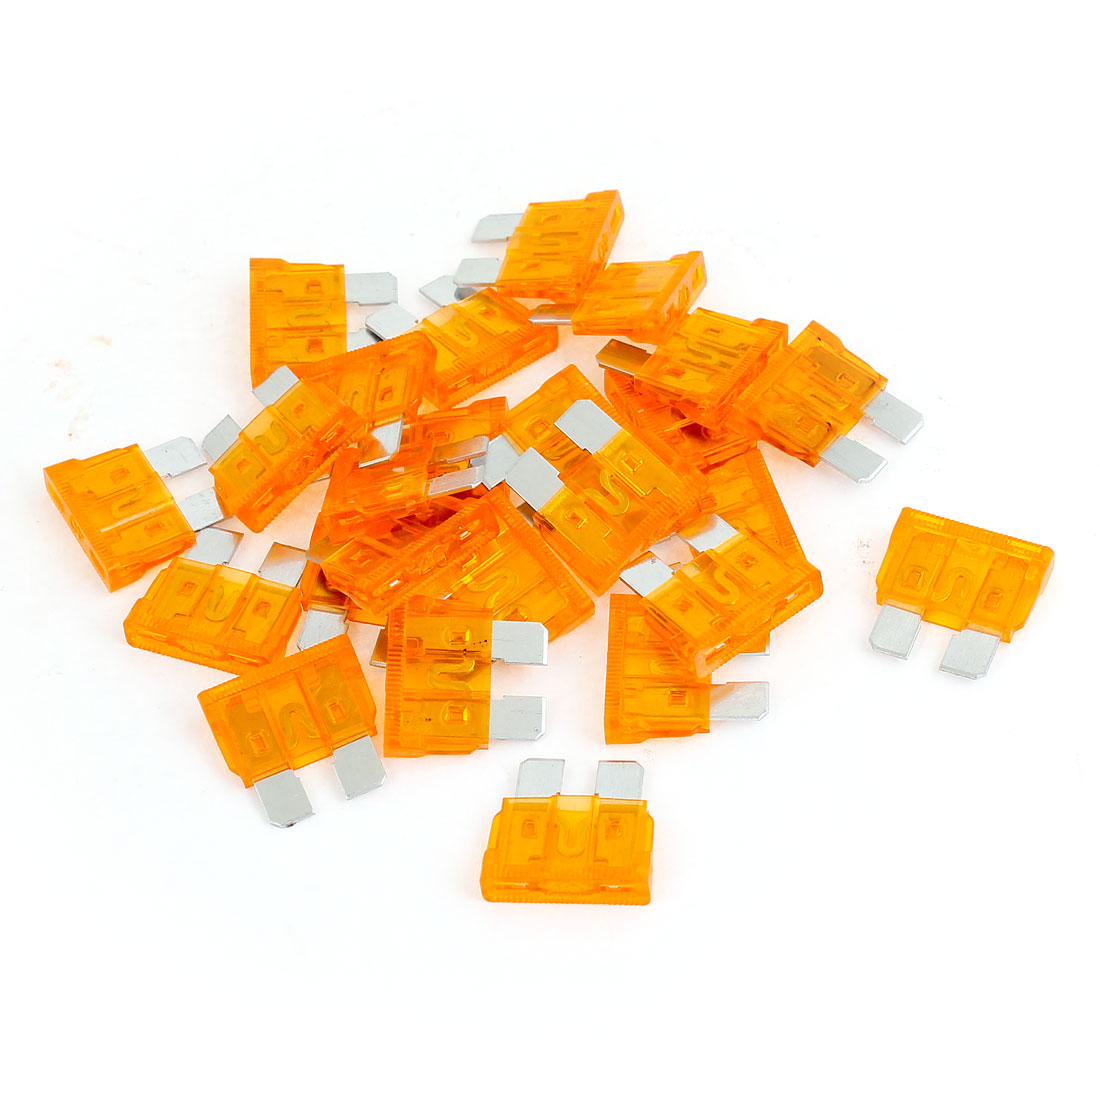 25 Pcs Orange 40A Automotive Fast Acting Blade Fuses for Car Motorcycle